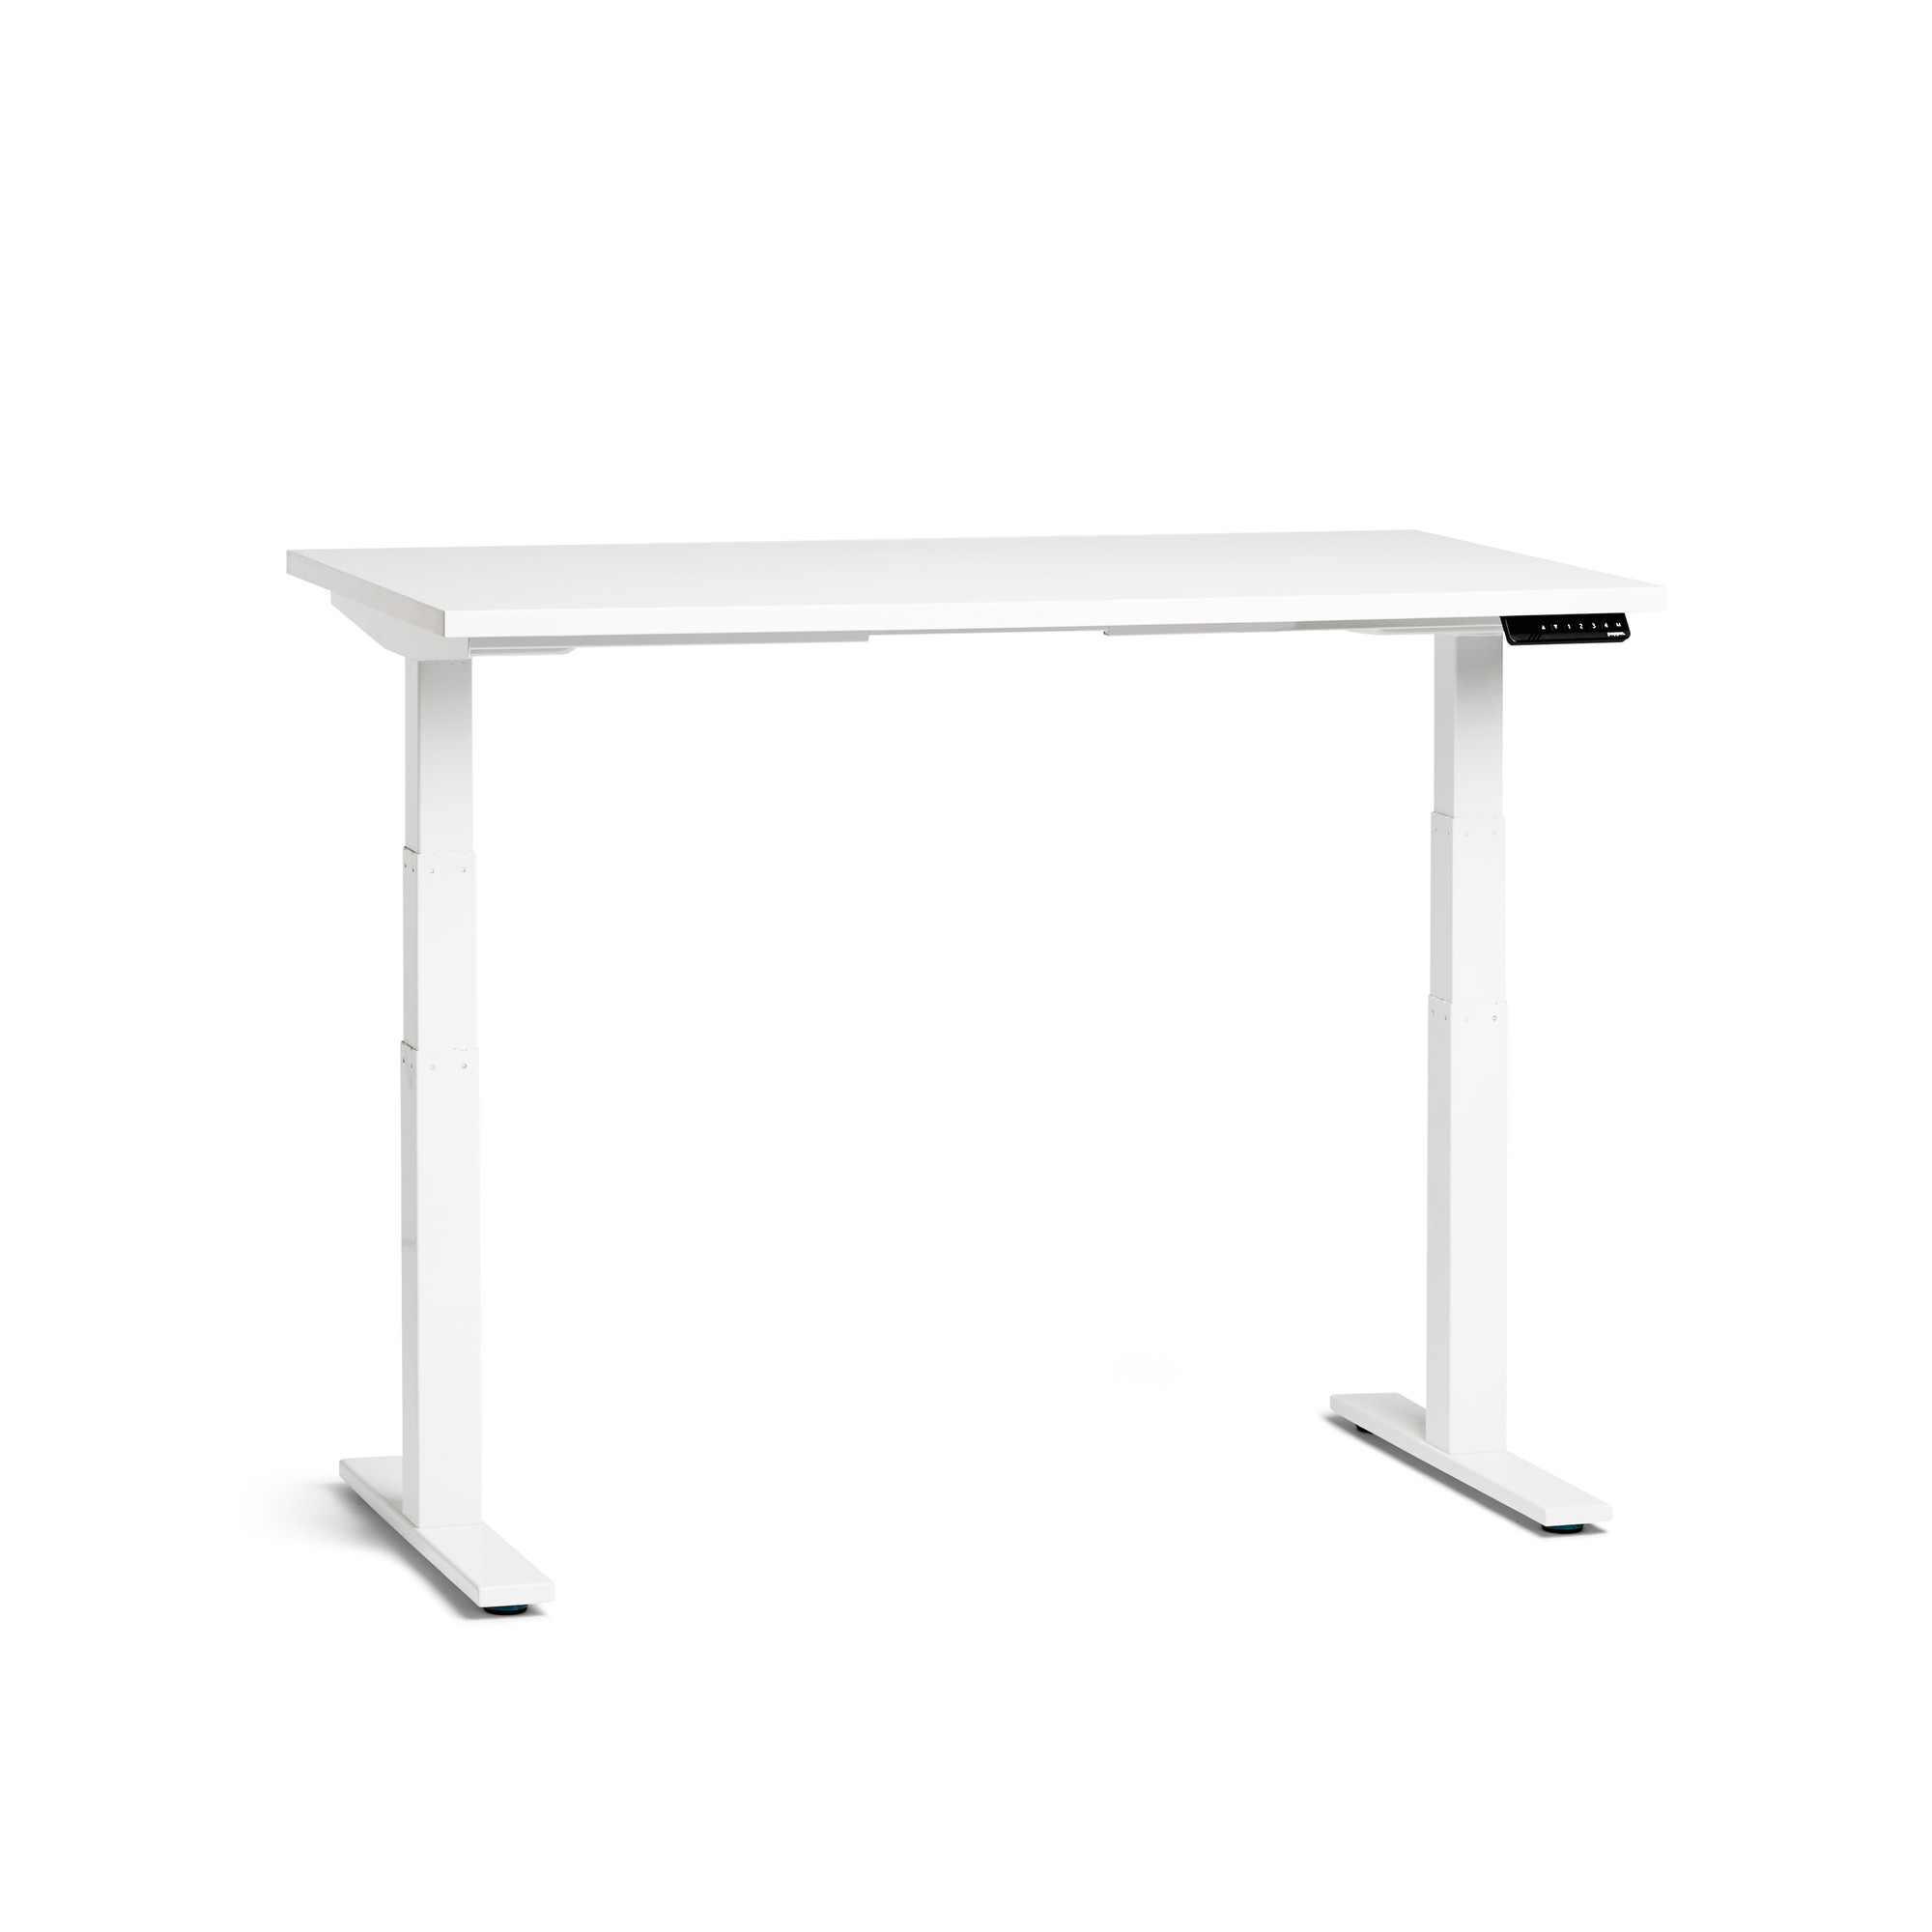 Images. Loft Adjustable Height Standing Single Desk ...